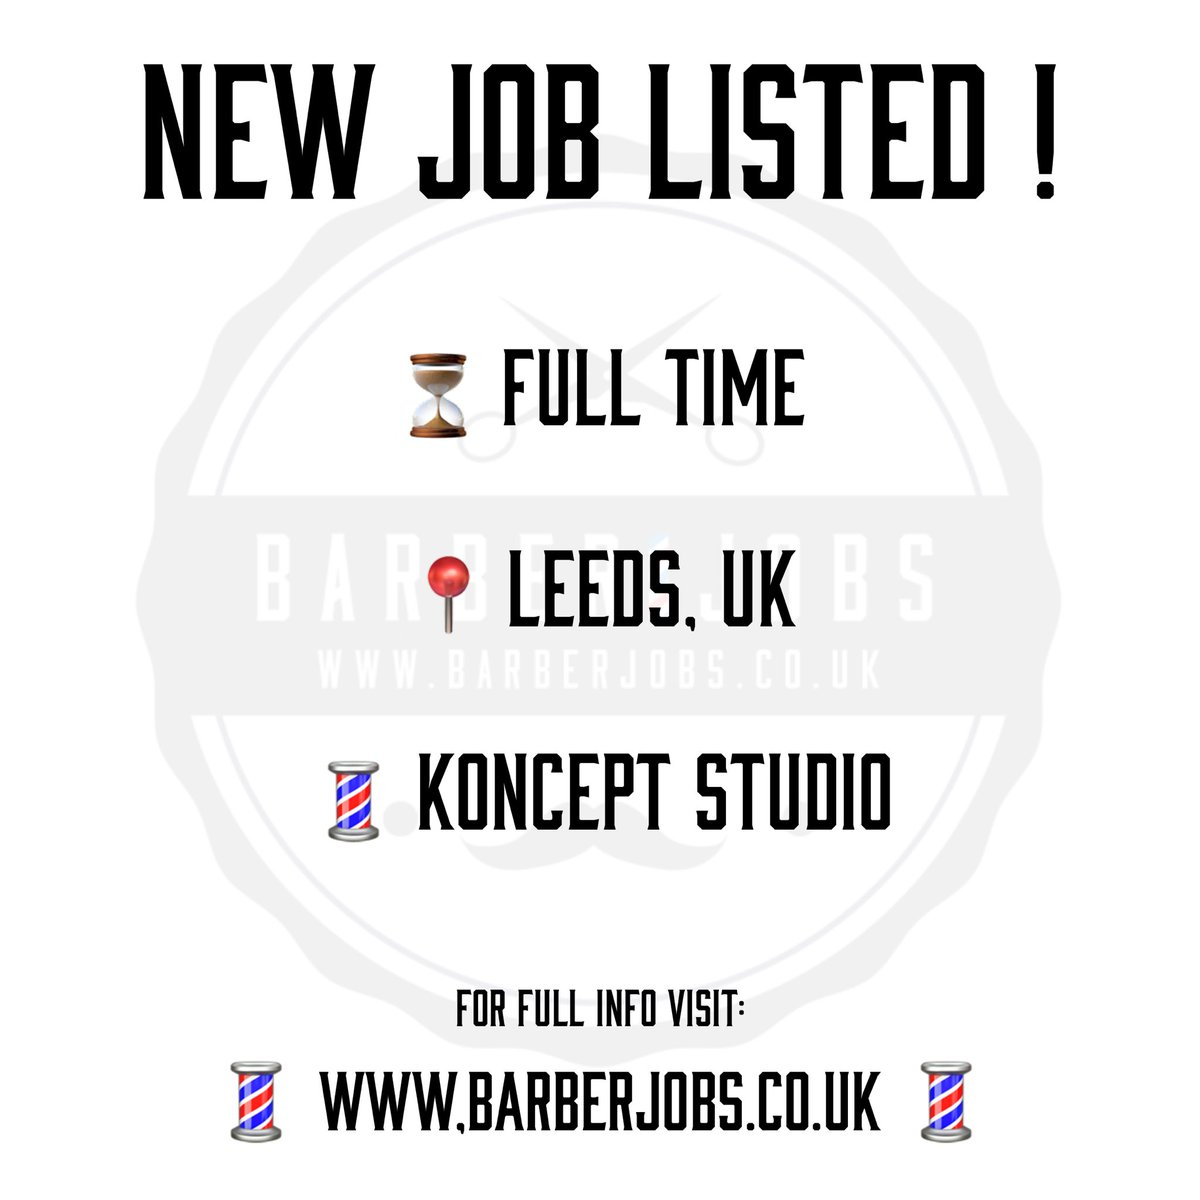 http://www.barberjobs.co.uk #barber #barbershop #barberlife #barbershopconnect #haircut #fade #barbers #hair #barbering #hairstyle #barberlove #wahl #beard #menshair #andis #barberworld #style #thebarberpost #fashion #barbernation #bhfyp #barberjobs #barberjob #cutthroat #razorpic.twitter.com/orRL8zyhSl